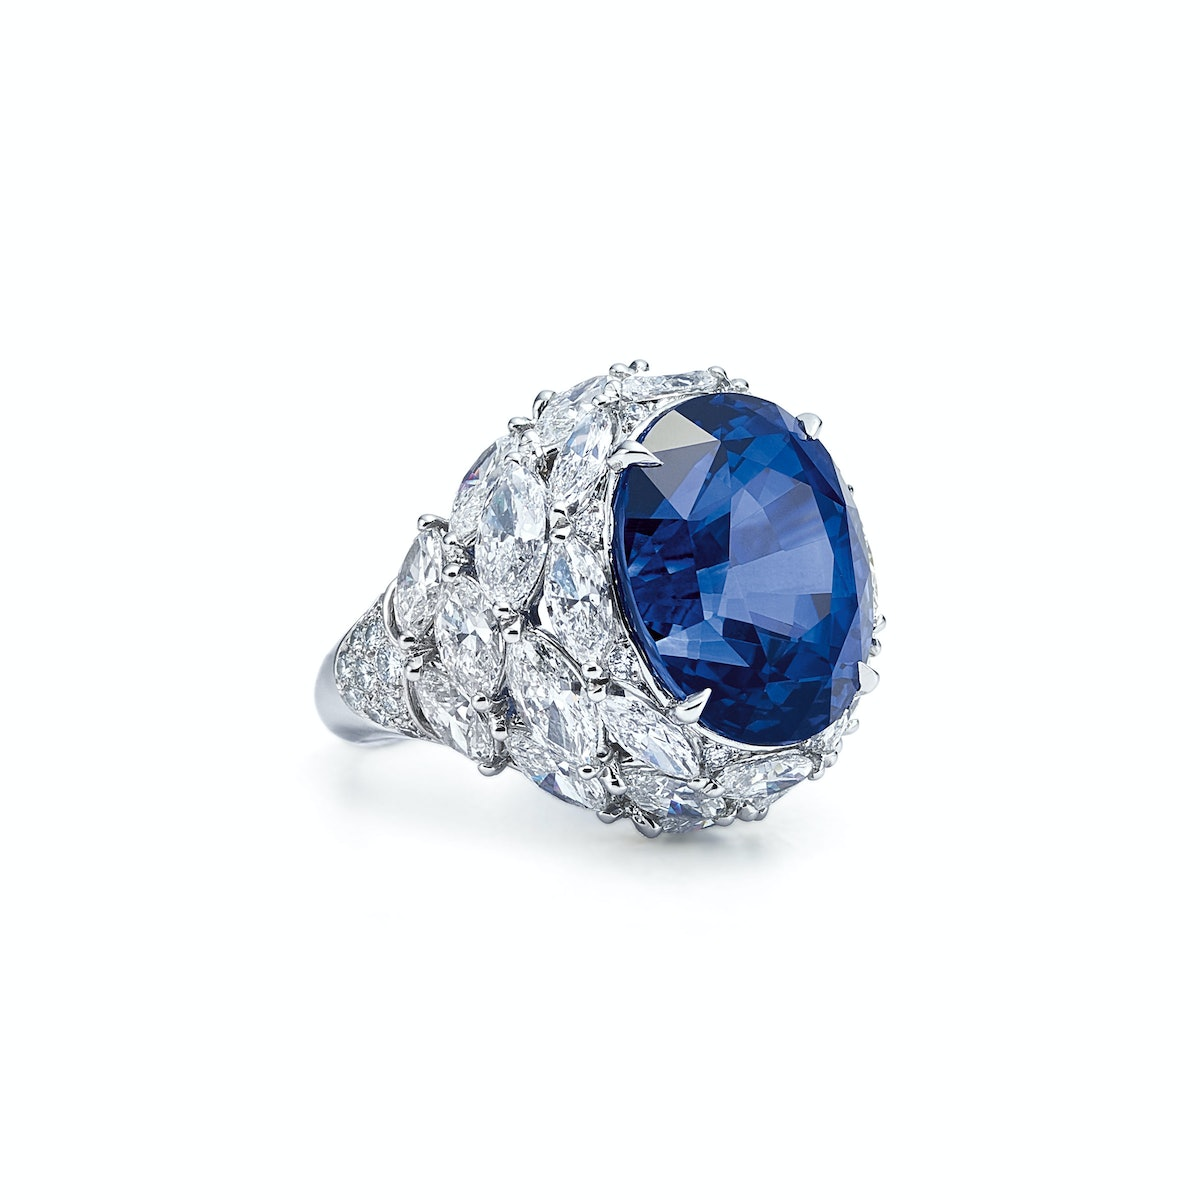 Tiffany-&-Co.-6.85-Carat-Blue-Sapphire-and-Diamond-Ring,-Price-Upon-Request,-at-www.Tiffany.com